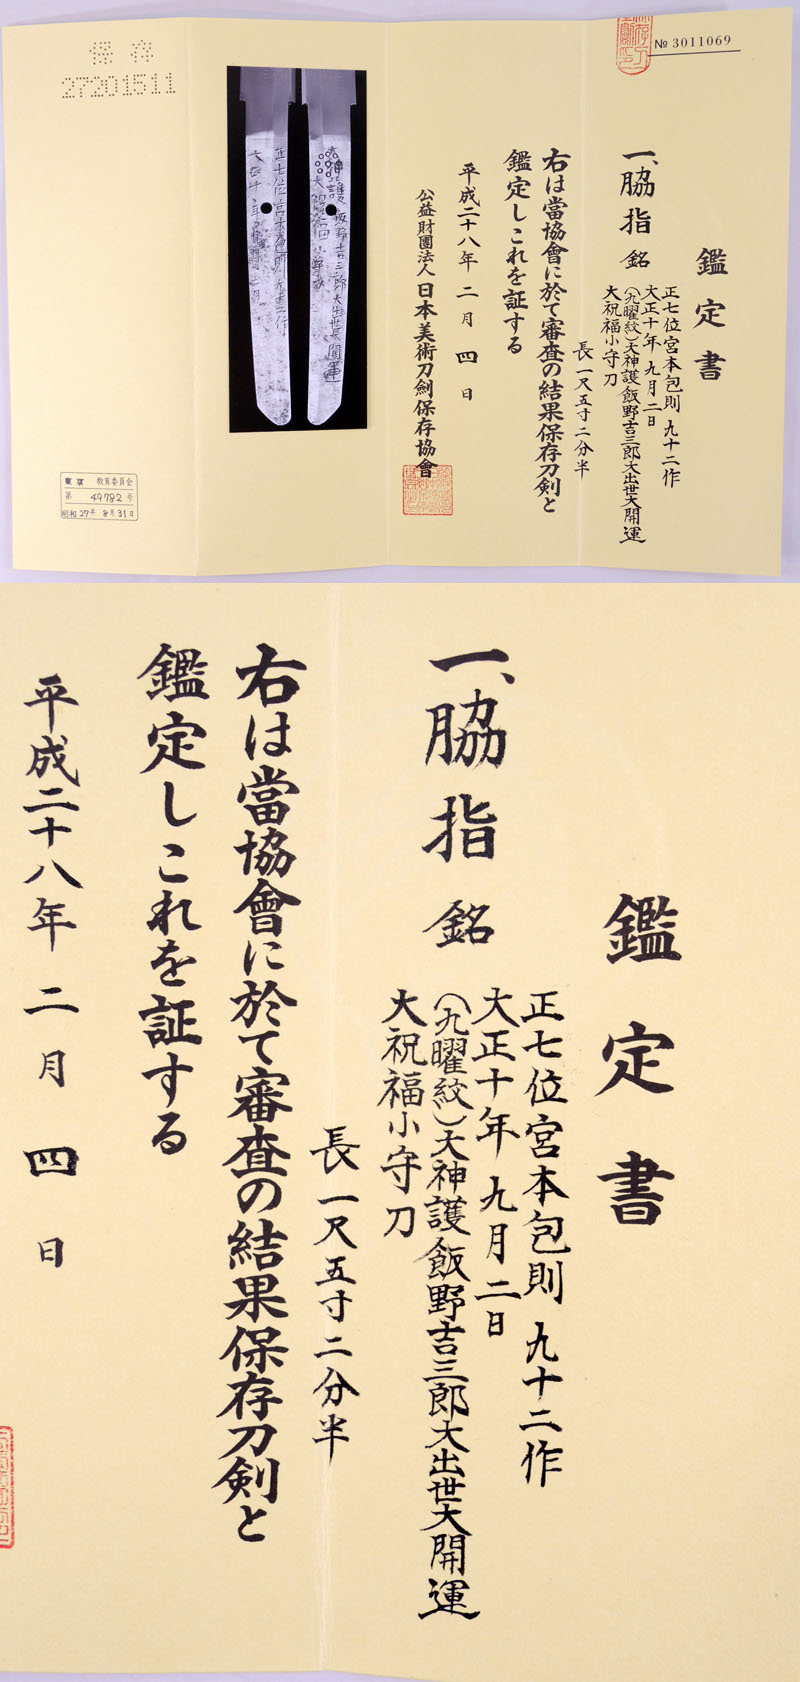 正七位宮本包則 Picture of Certificate